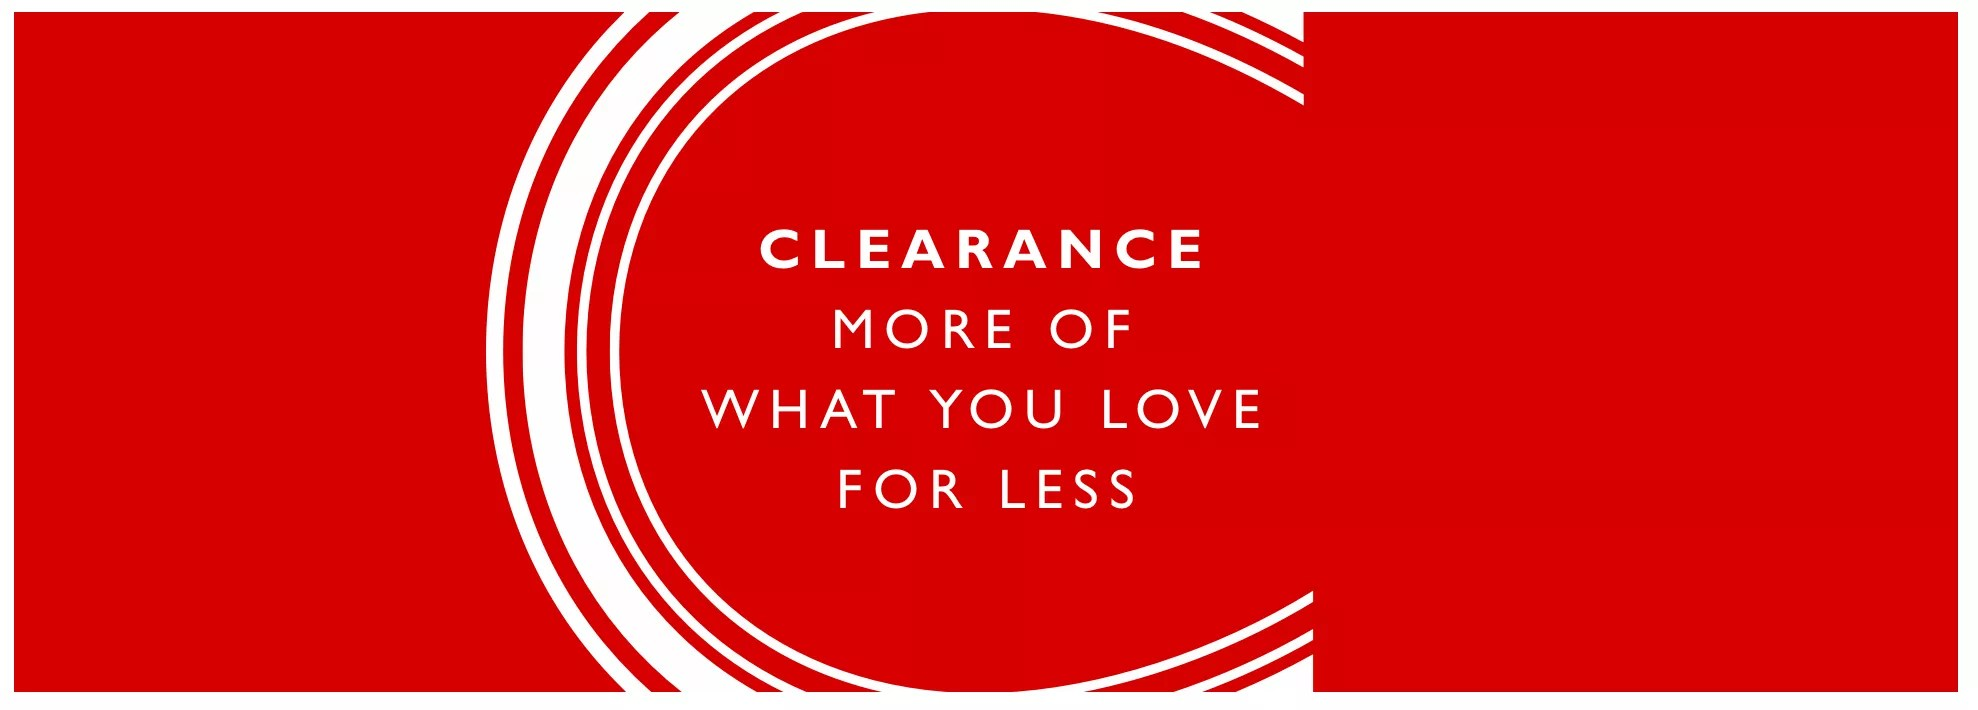 Diy Bank Holiday Offers Clearance Offers Find Clearance Bargains John Lewis